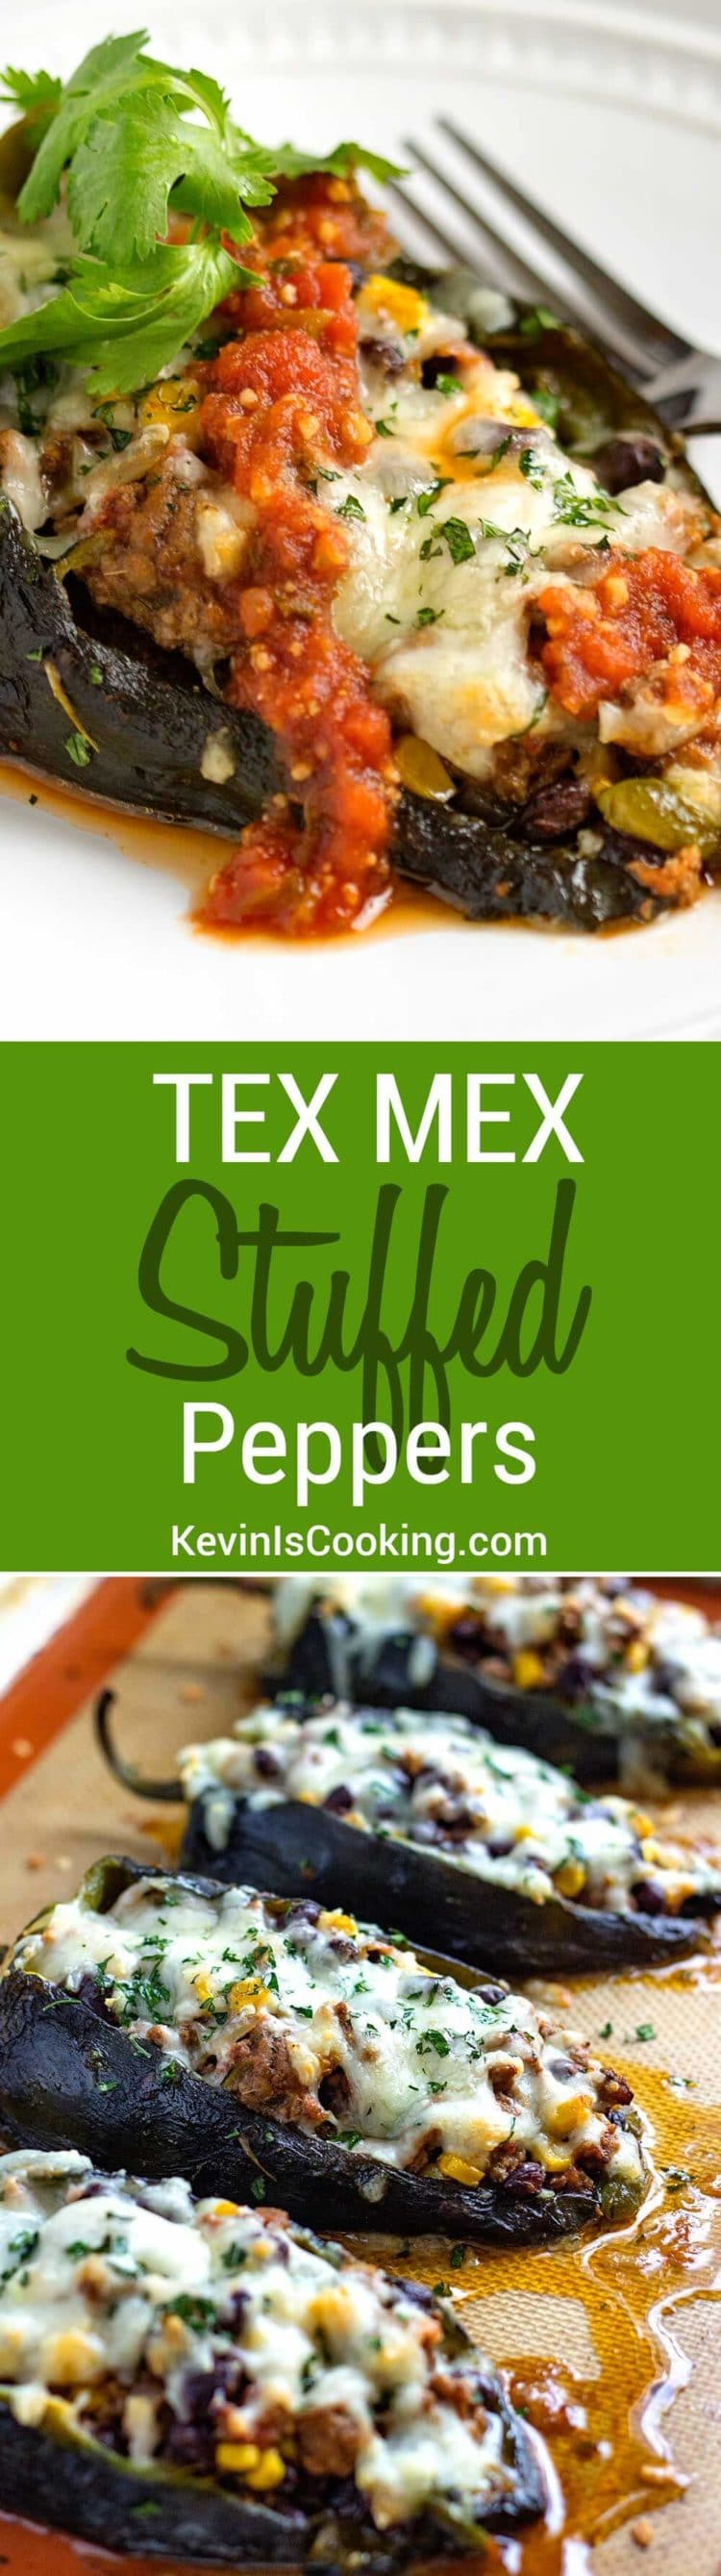 These Tex Mex Stuffed Peppers are a house favorite. Filled with ground beef, black beans, corn, and pepper jack cheese! So good, great for large crowds, too.